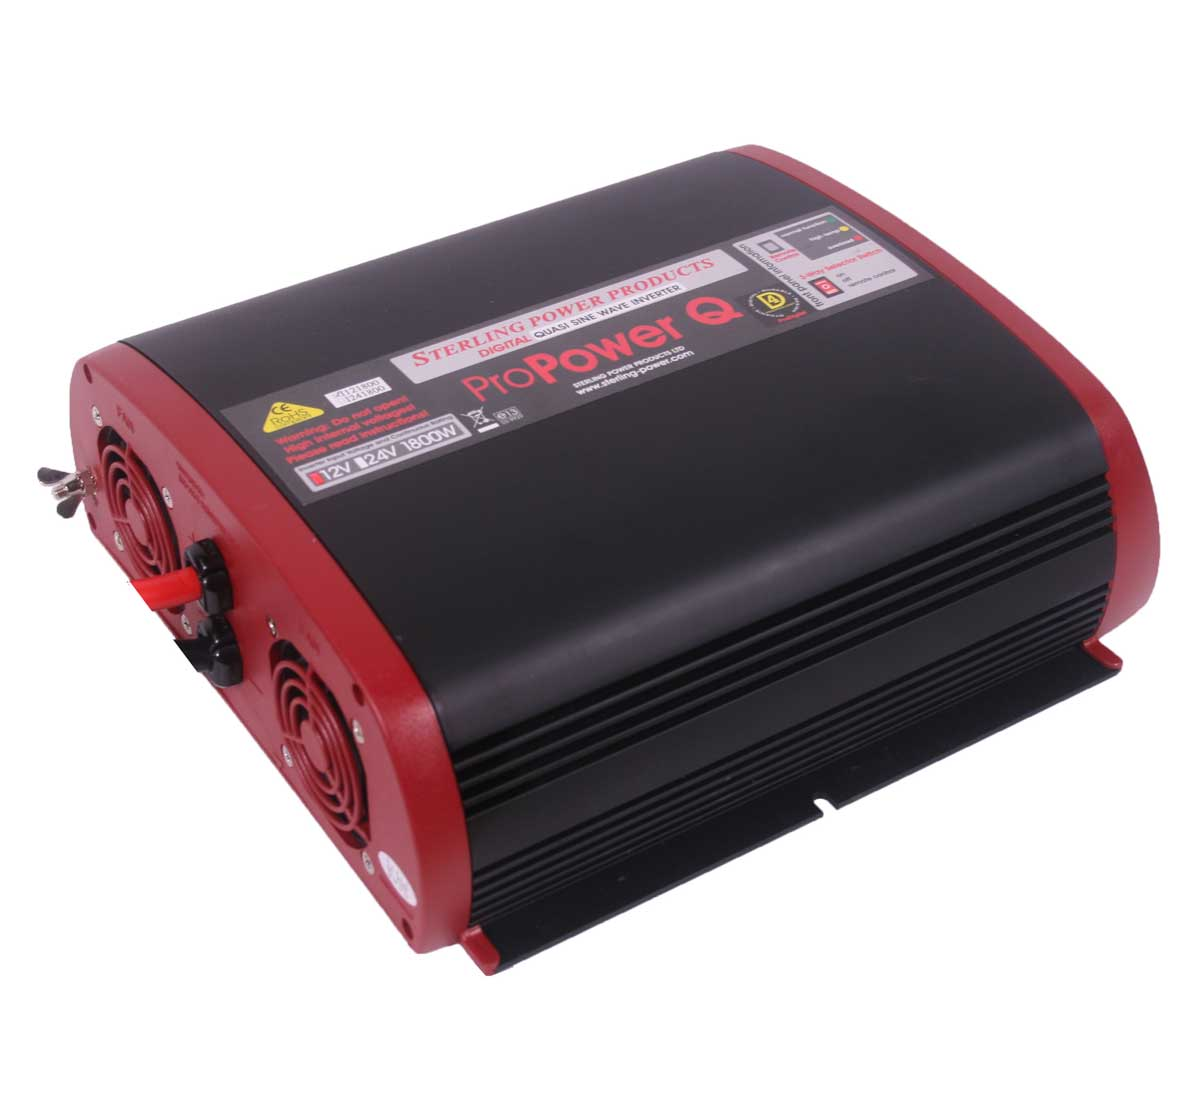 Sterling Power Pro Power Q 1800W Quasi Sine Wave Inverter i121800